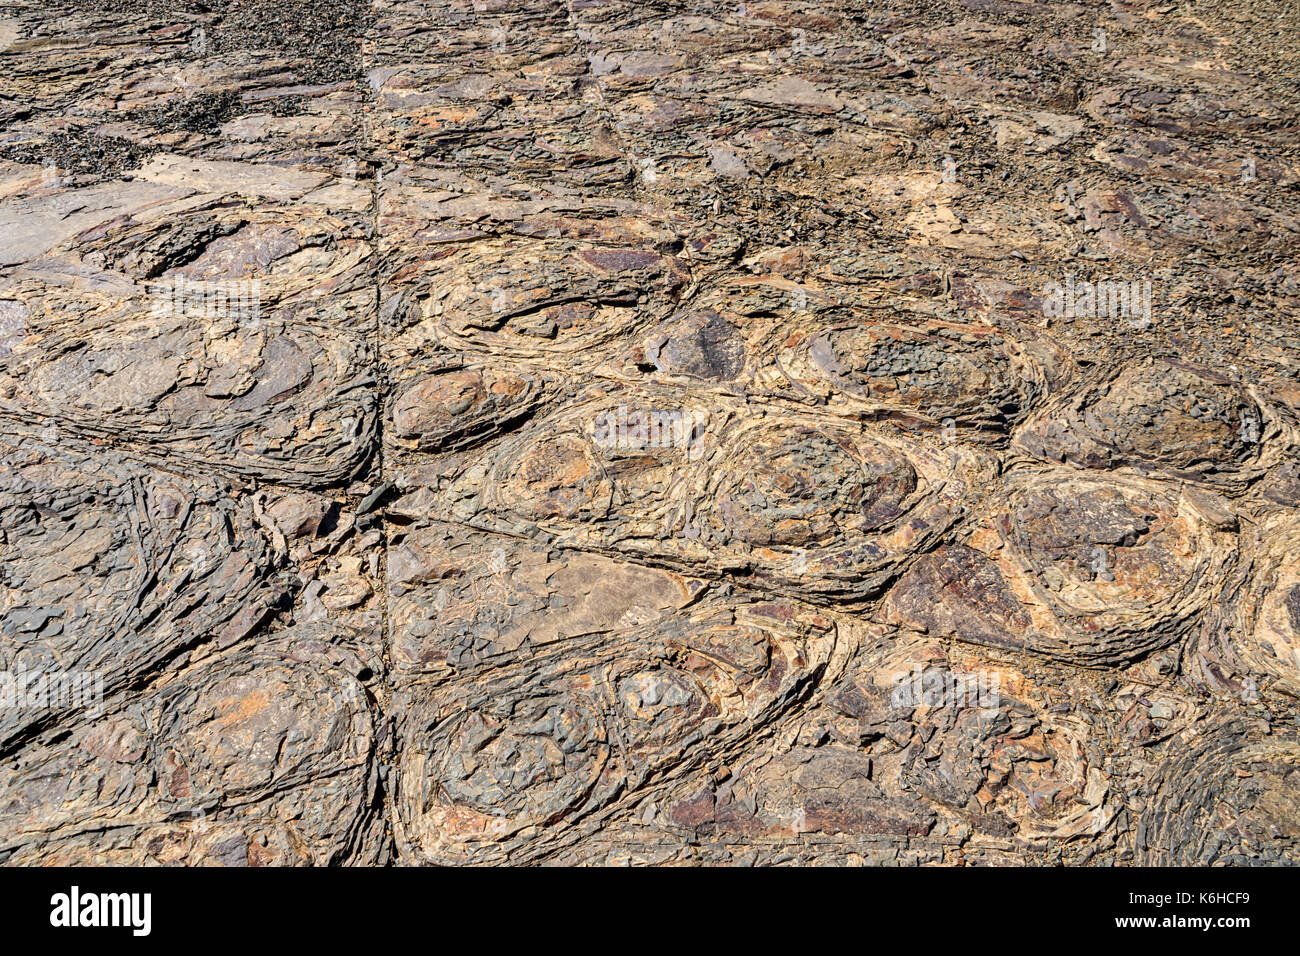 An unusual rock formation in Southern African savanna - Stock Image